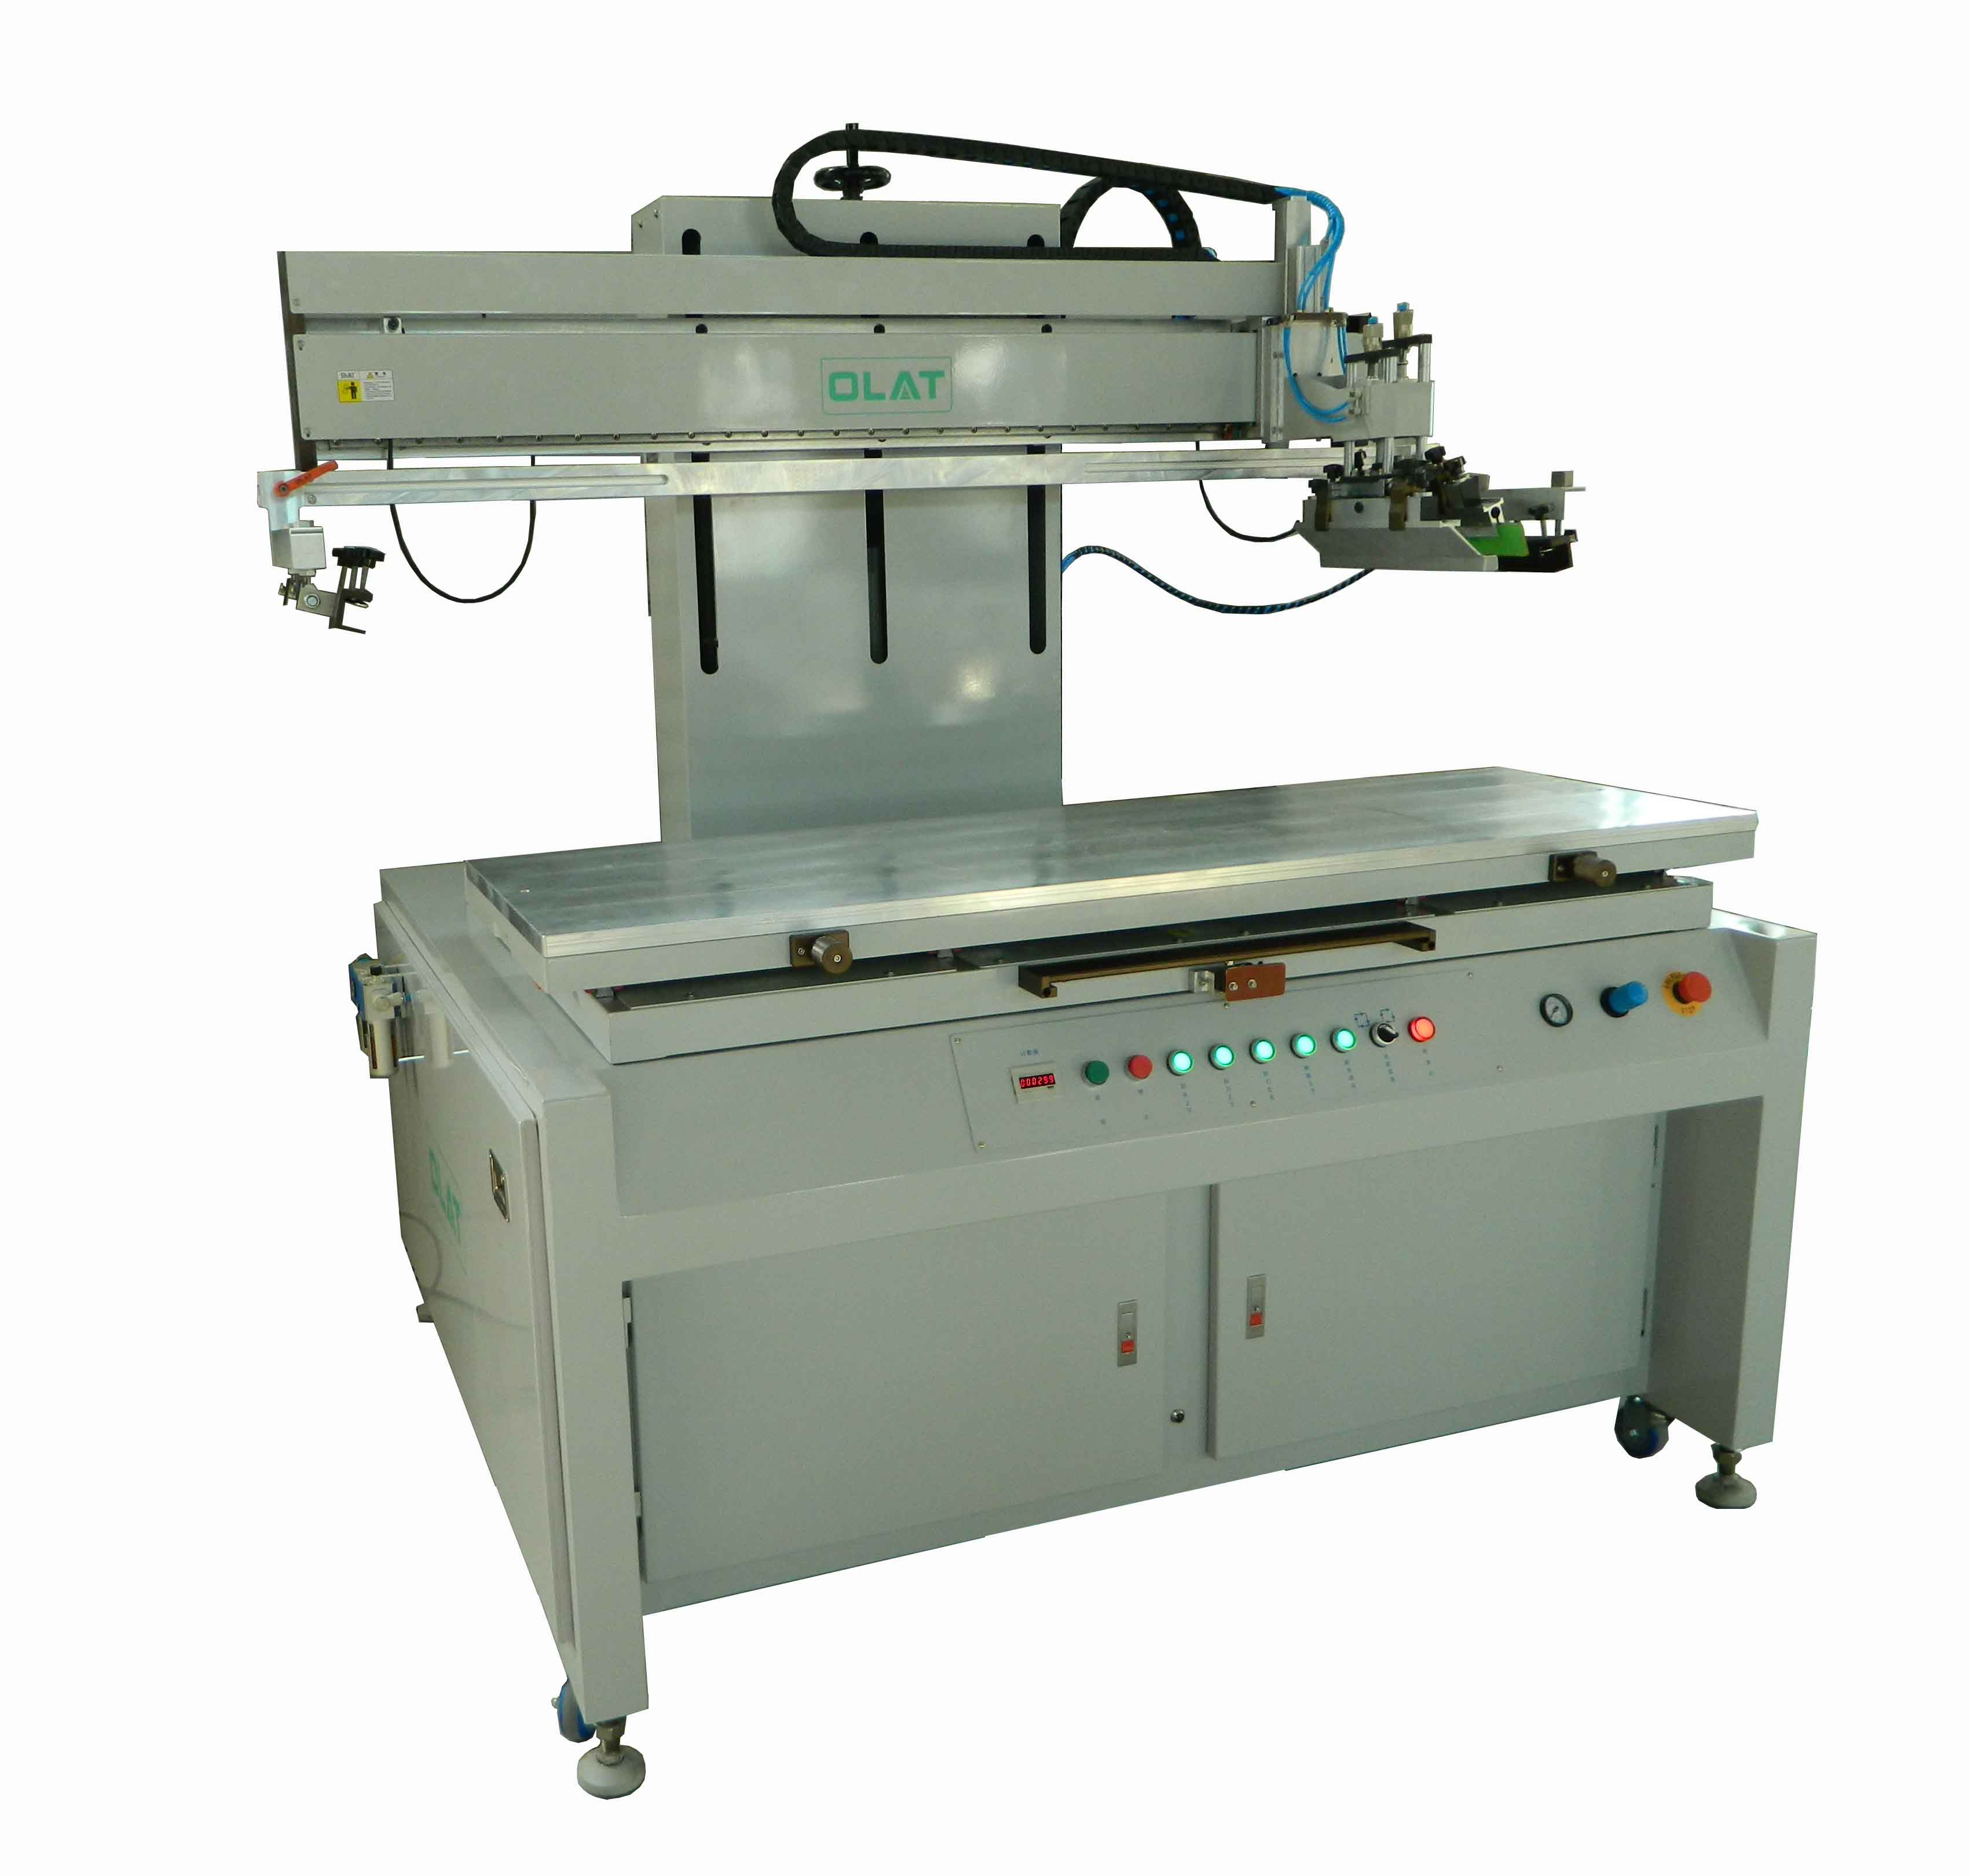 Kunshan customer order large plane ran network printing machine flat screen printing machine